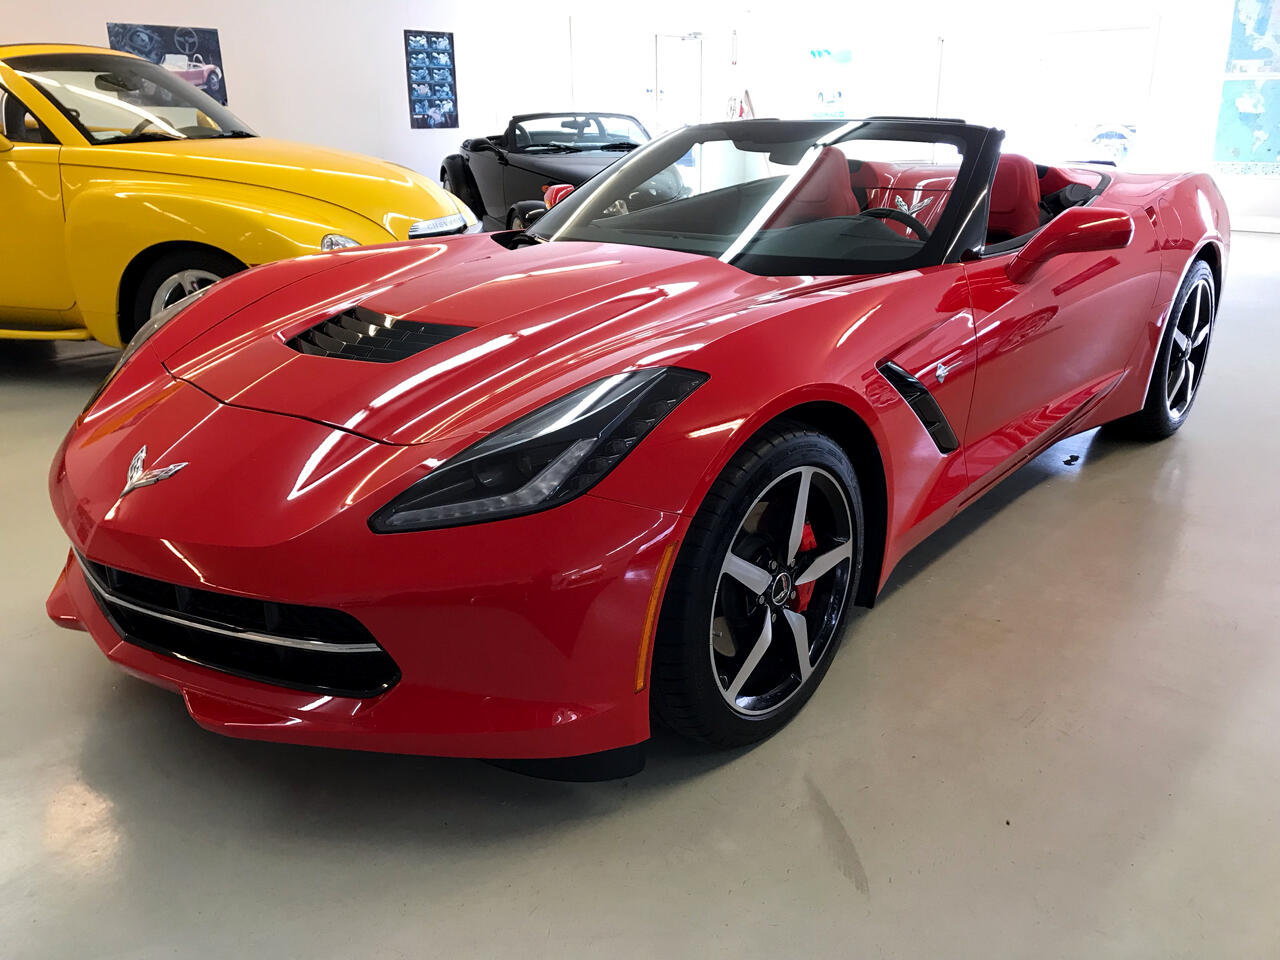 2015 Chevrolet Corvette 1LT Convertible